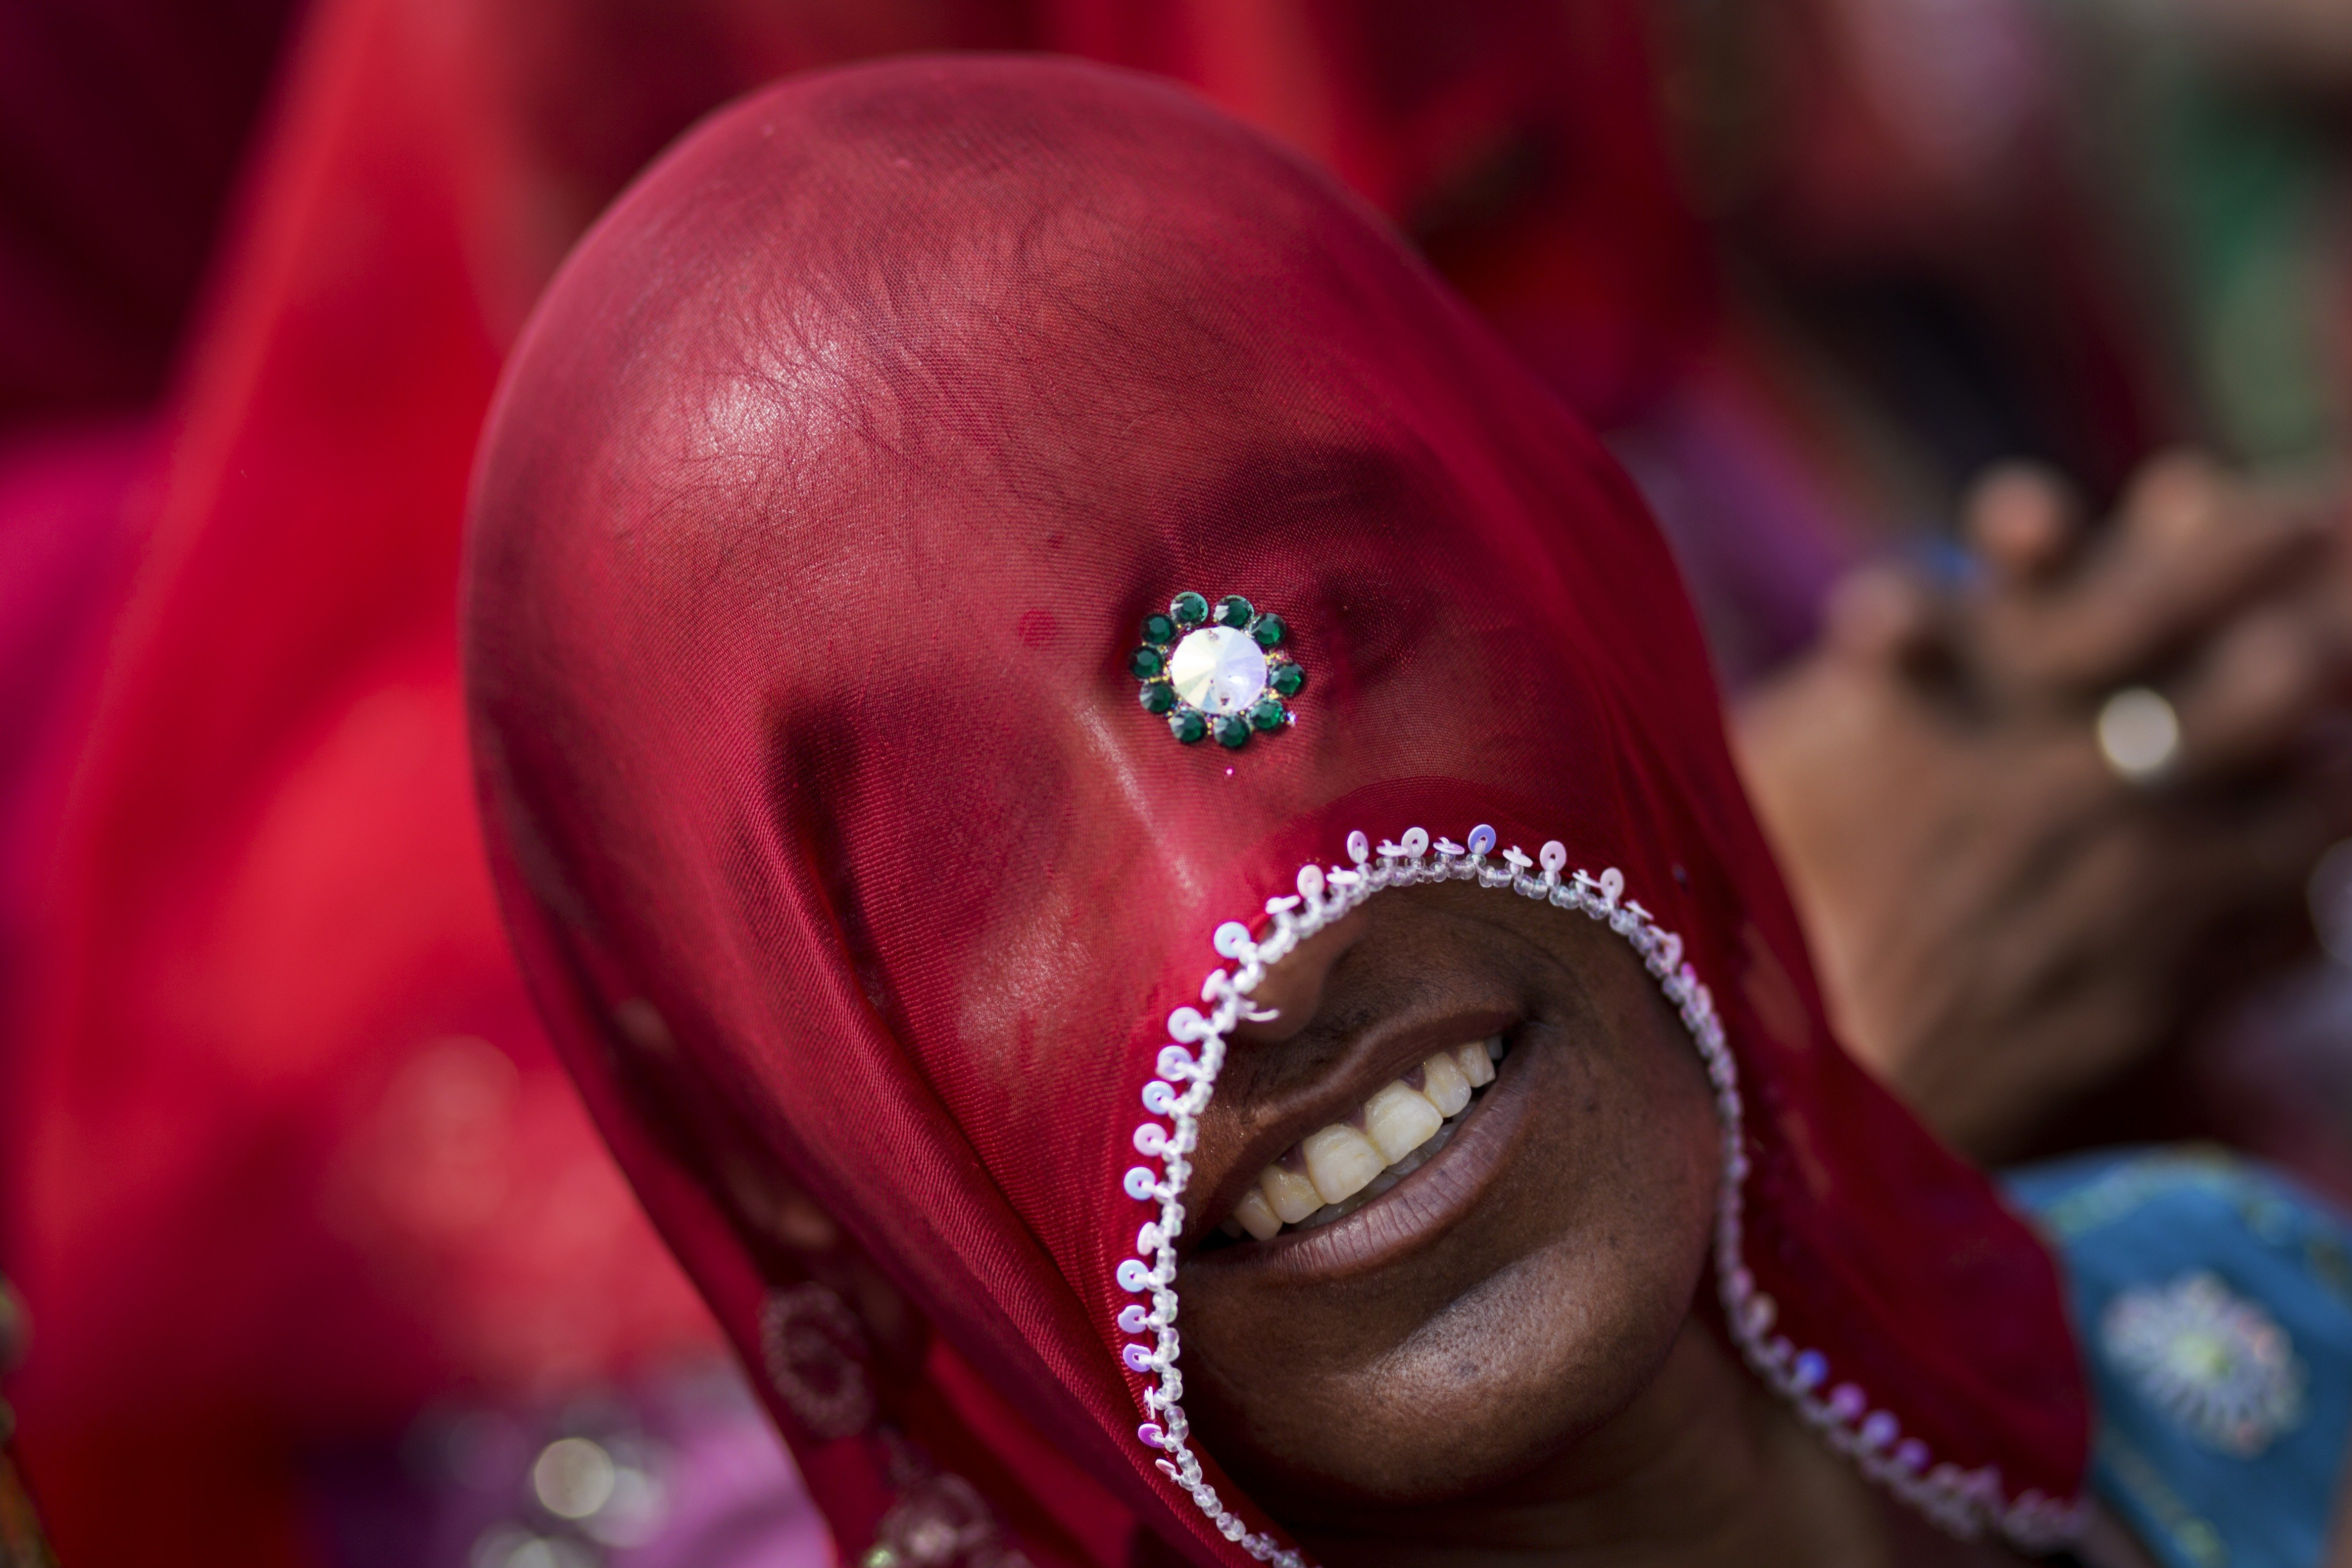 A Hindu woman from Rajasthan participates in a religious procession during Kumbh Mela, or Pitcher Festival, at Trimbakeshwar, India, on Aug. 27, 2015.